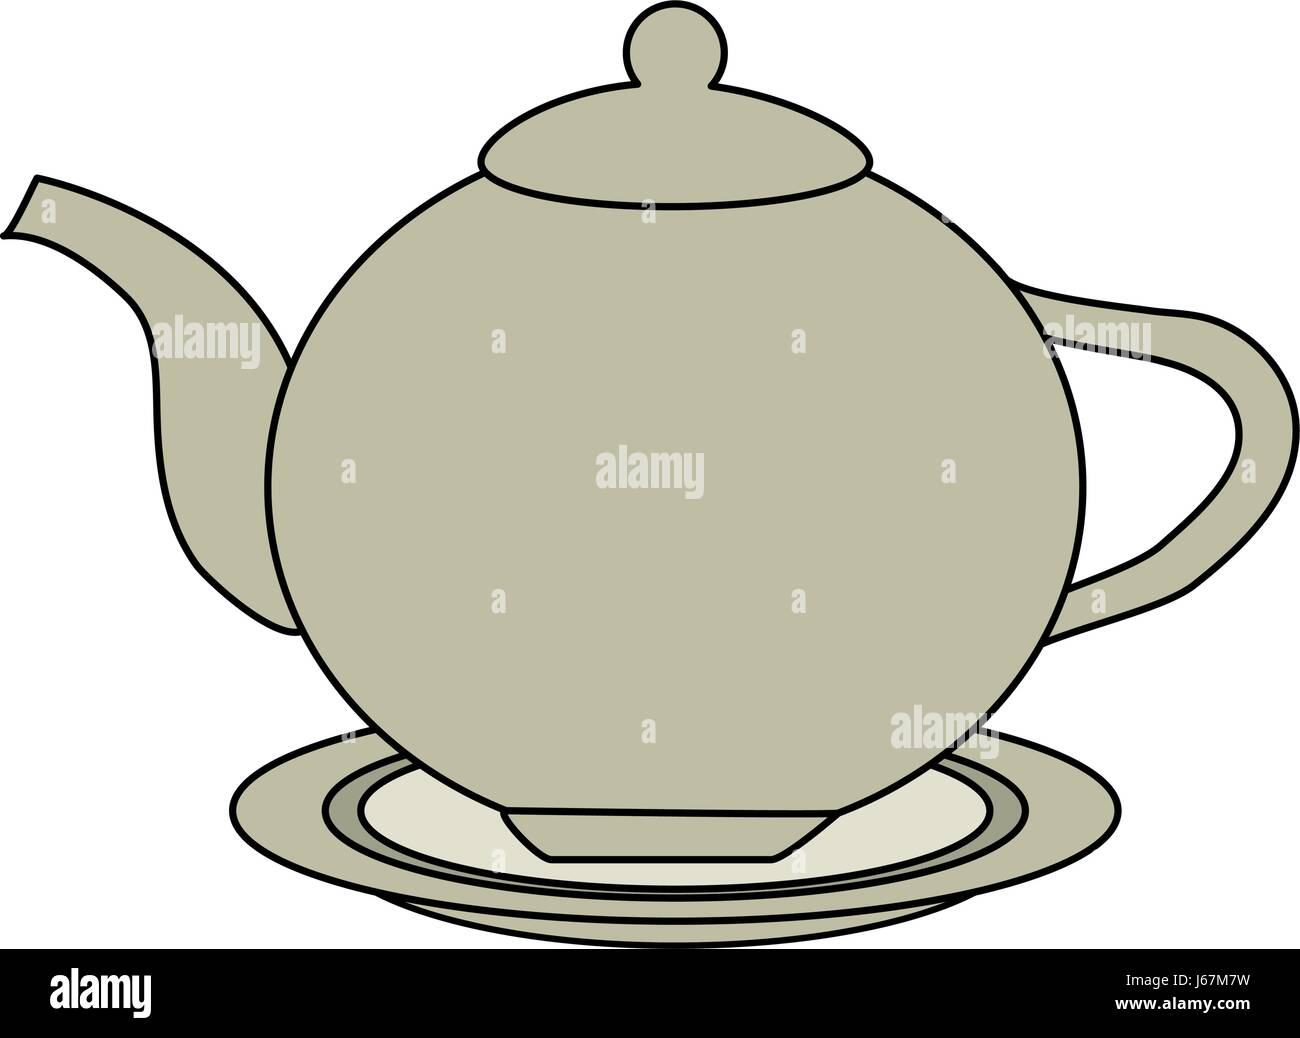 color image cartoon porcelain tea kettle for hot drinks - Stock Vector